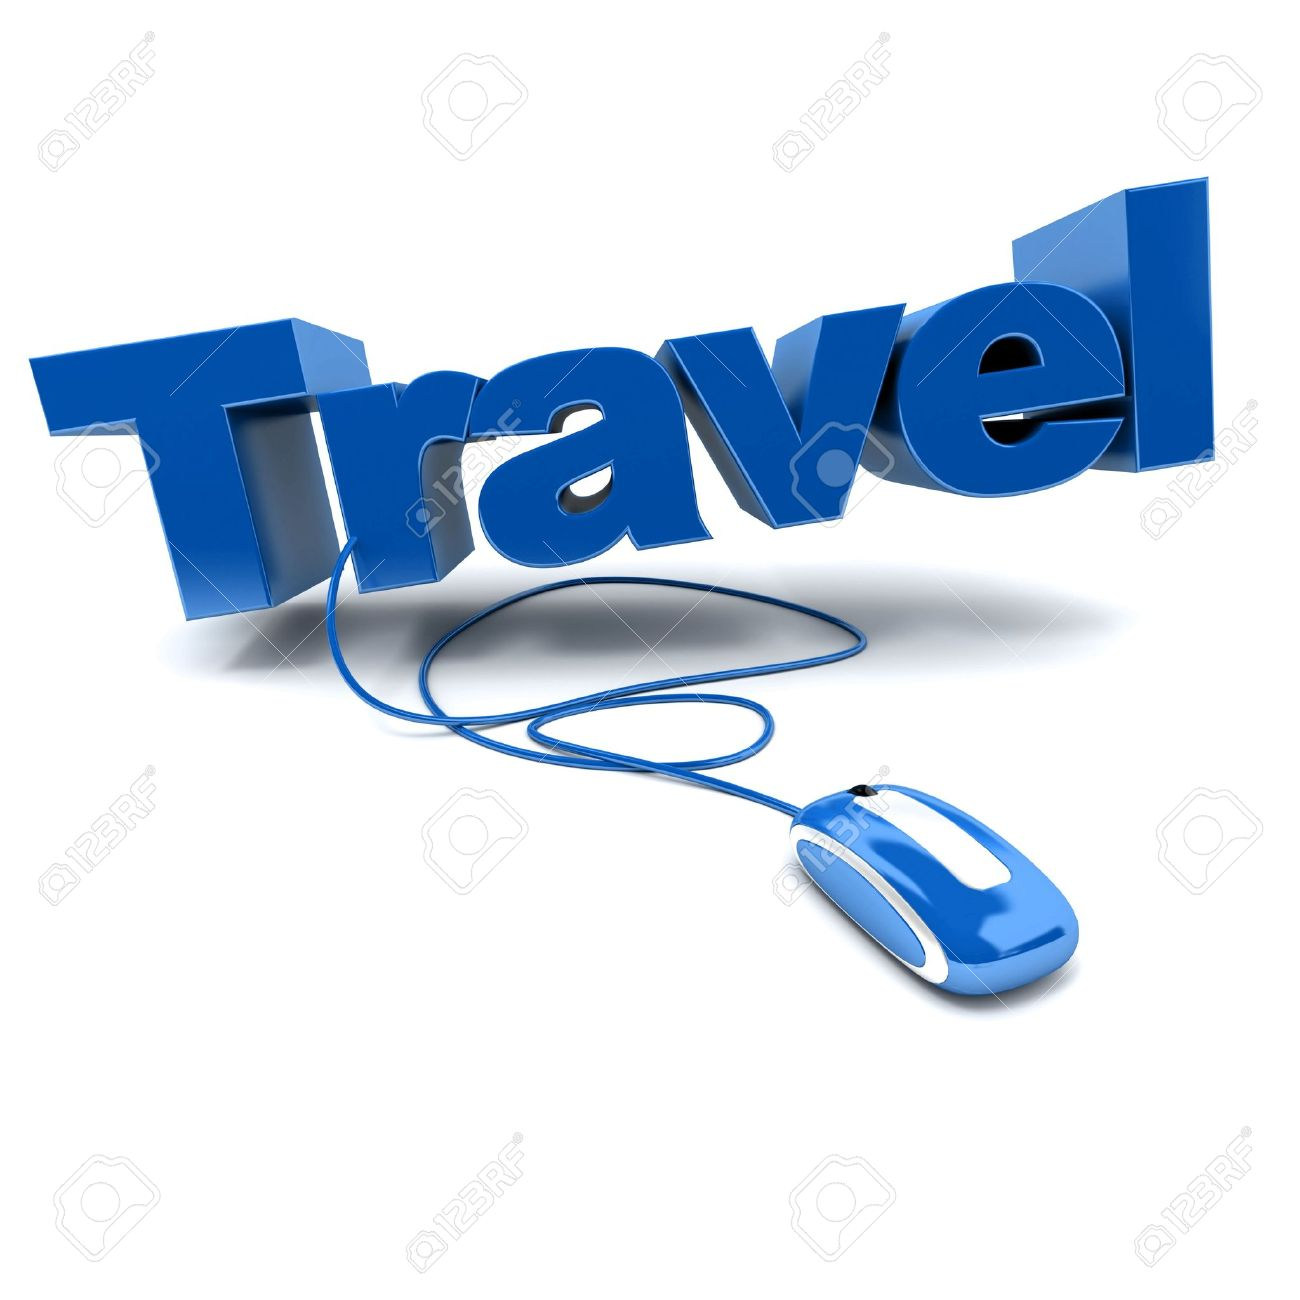 Blue And White 3D Illustration Of The Word Travel Connected To A Computer Mouse Stock